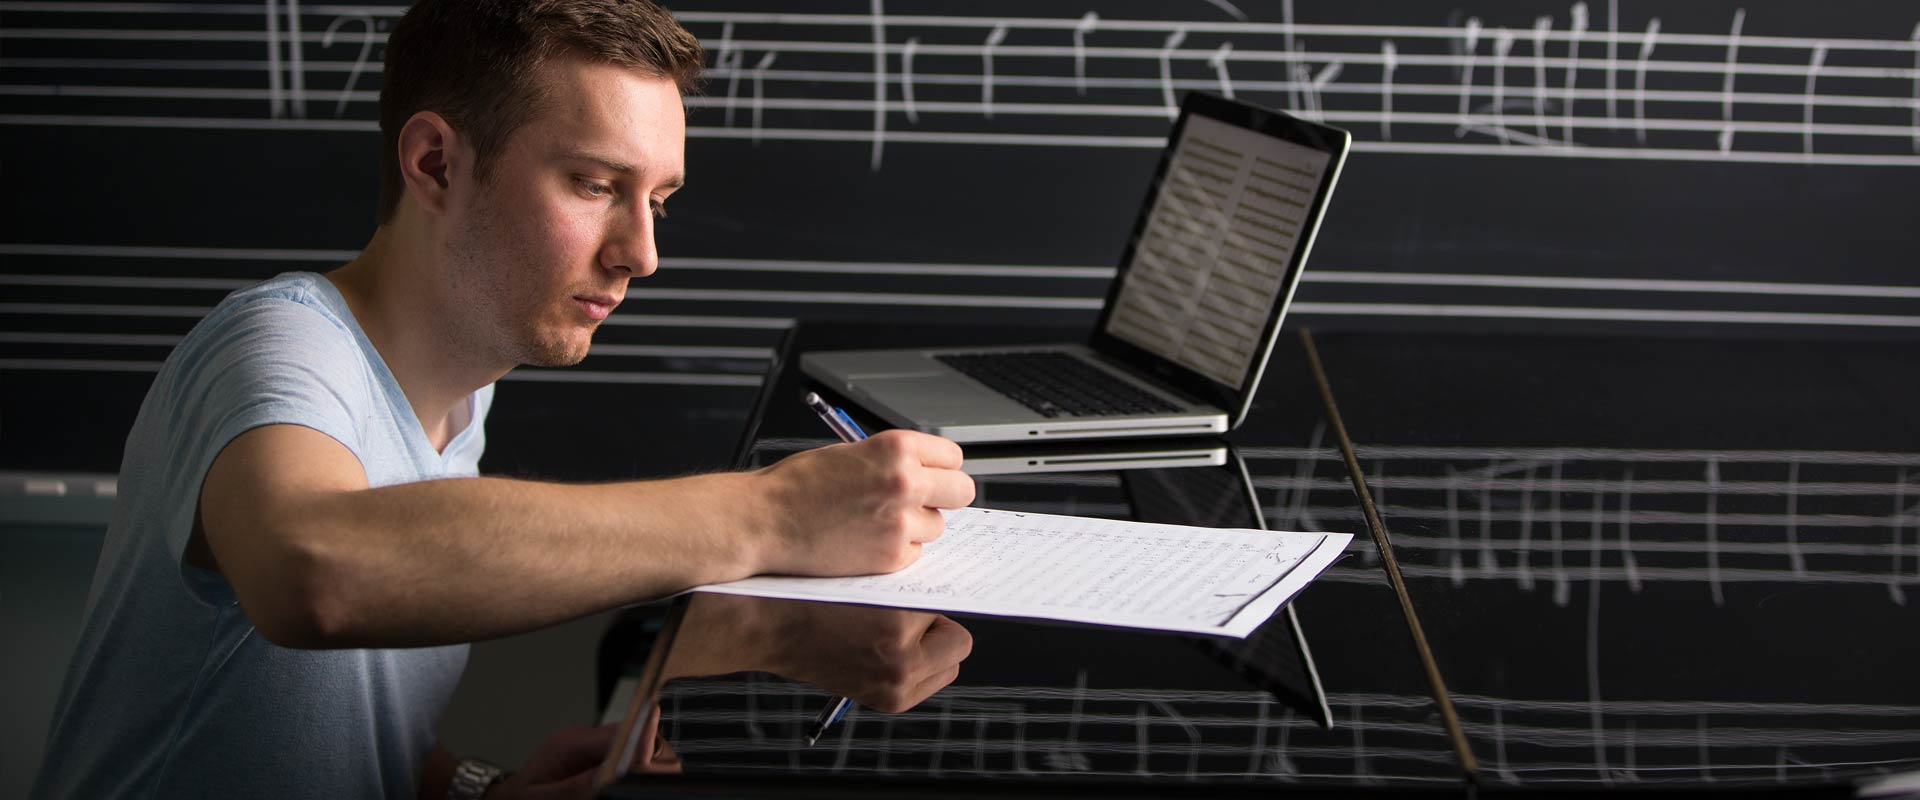 Male student composing music